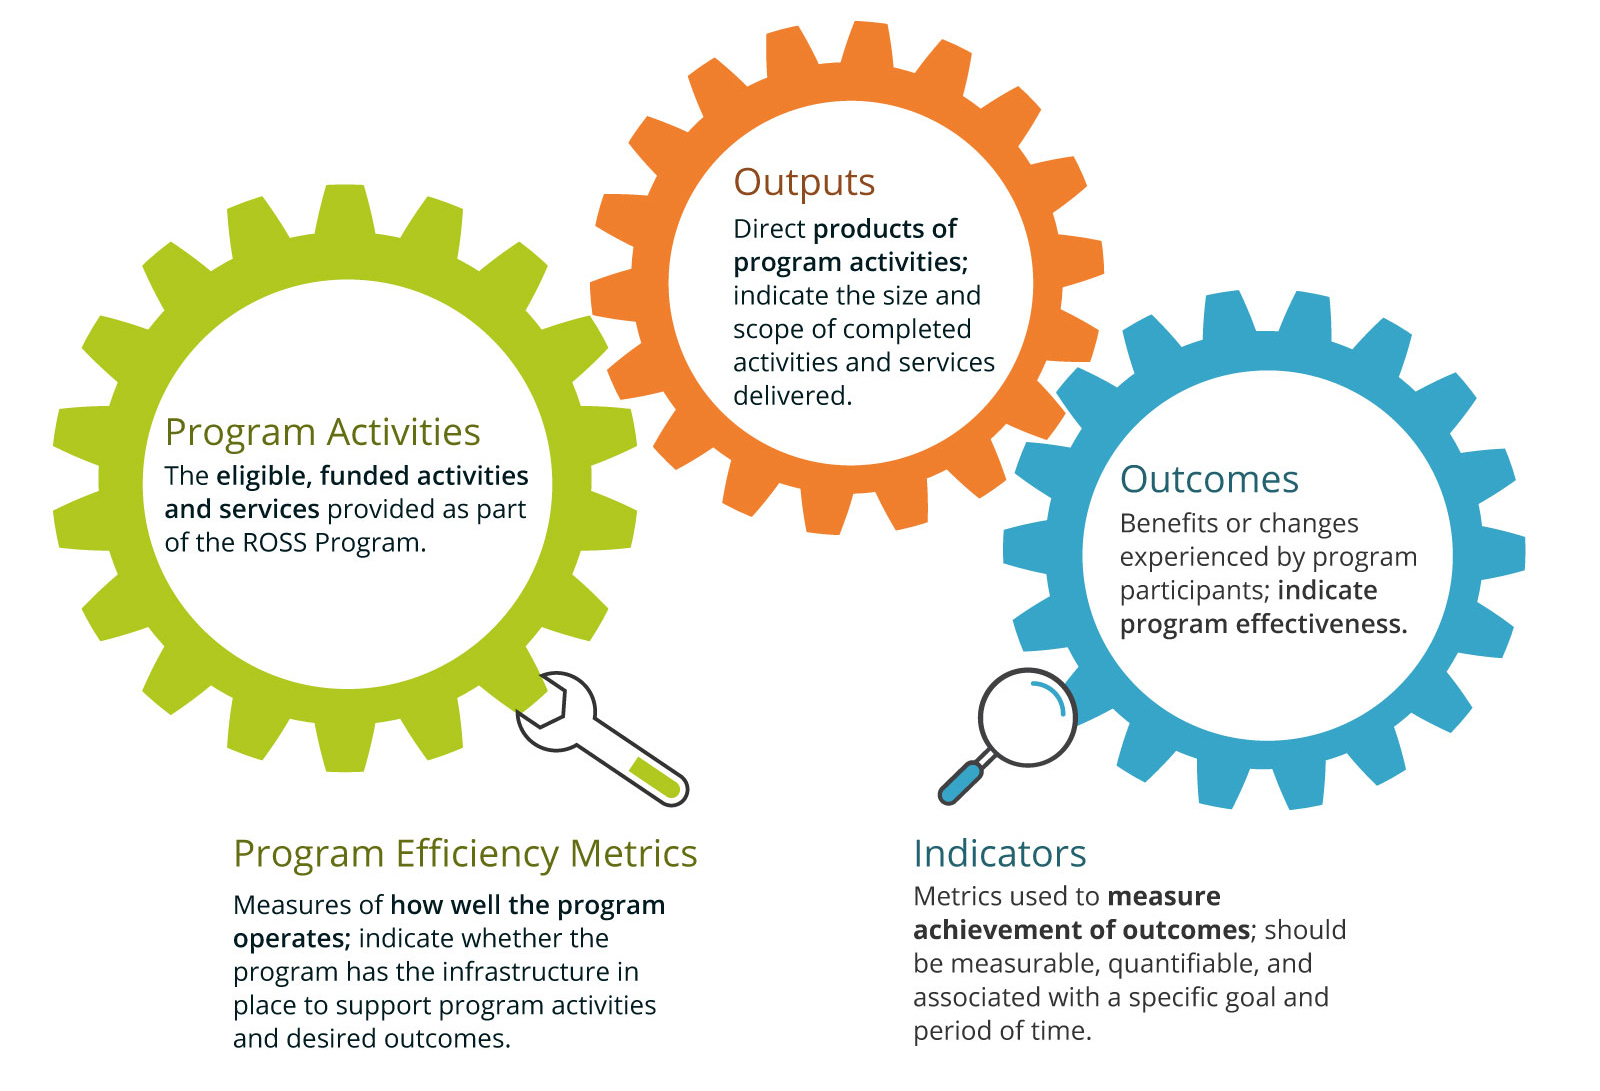 Three interconnectioning gears: Activities (The eligible, funded activities, and services provided as part of the ROSS program.) Outputs (Direct products of program activities; indicate the size and scope of completed activities and services delivered.). Outcomes (Benefits or changes experienced by program participants; indicate program effectiveness). Efficiency Metrics is a wrench turning the Activities gear and says: Measures how well the program operates; indicate whether the program has the infrastructure in place to support program activities and desired outcomes. Indicators is a magnifying glass looking at the outcomes gear and says: Metrics used to measure achivement of outcomes; should be measurable, quantifiable, and associated with a specific goal and period of time.